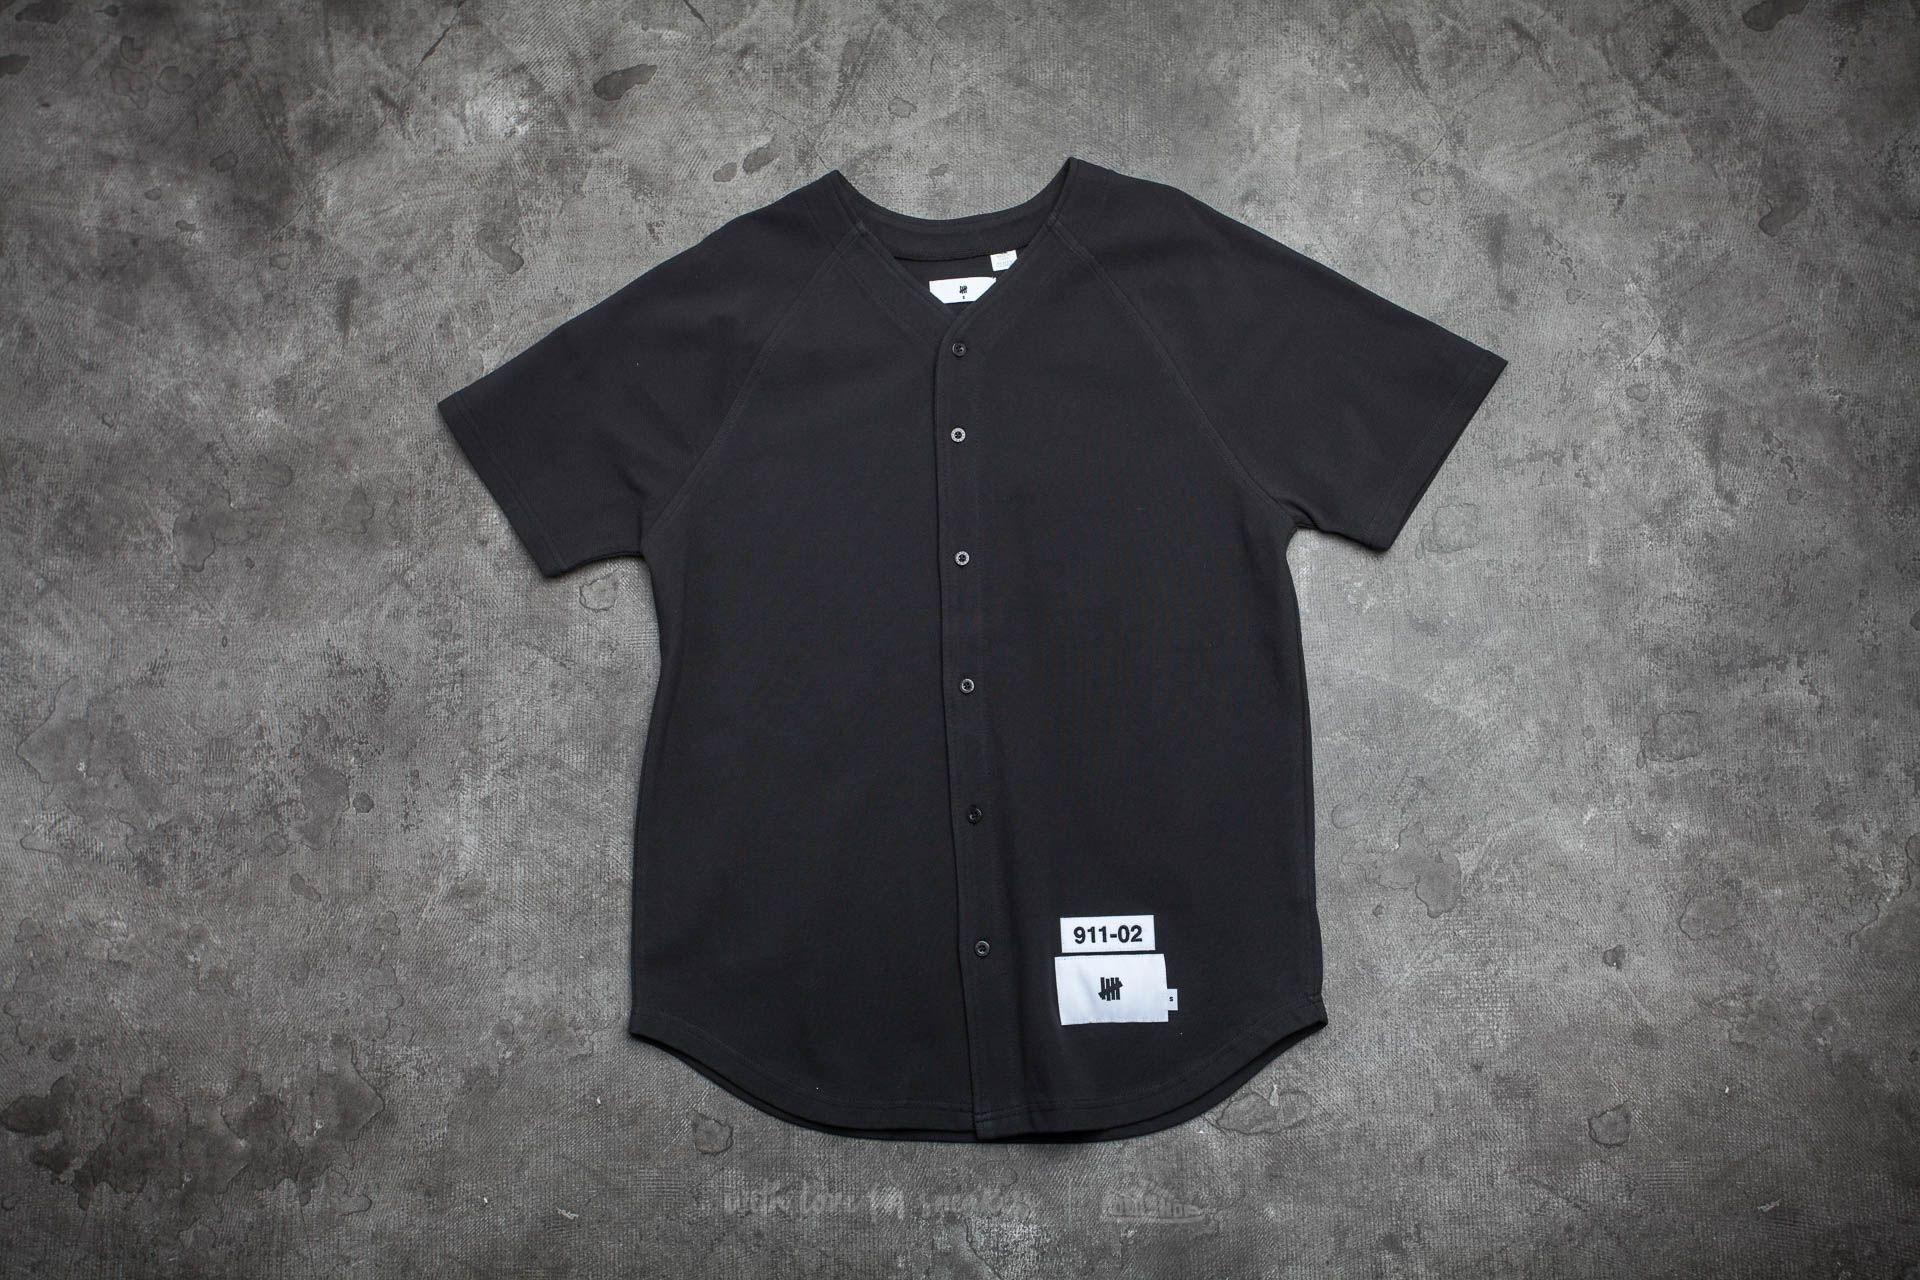 Undefeated Cahill Pique Baseball Jersey Black - 14550